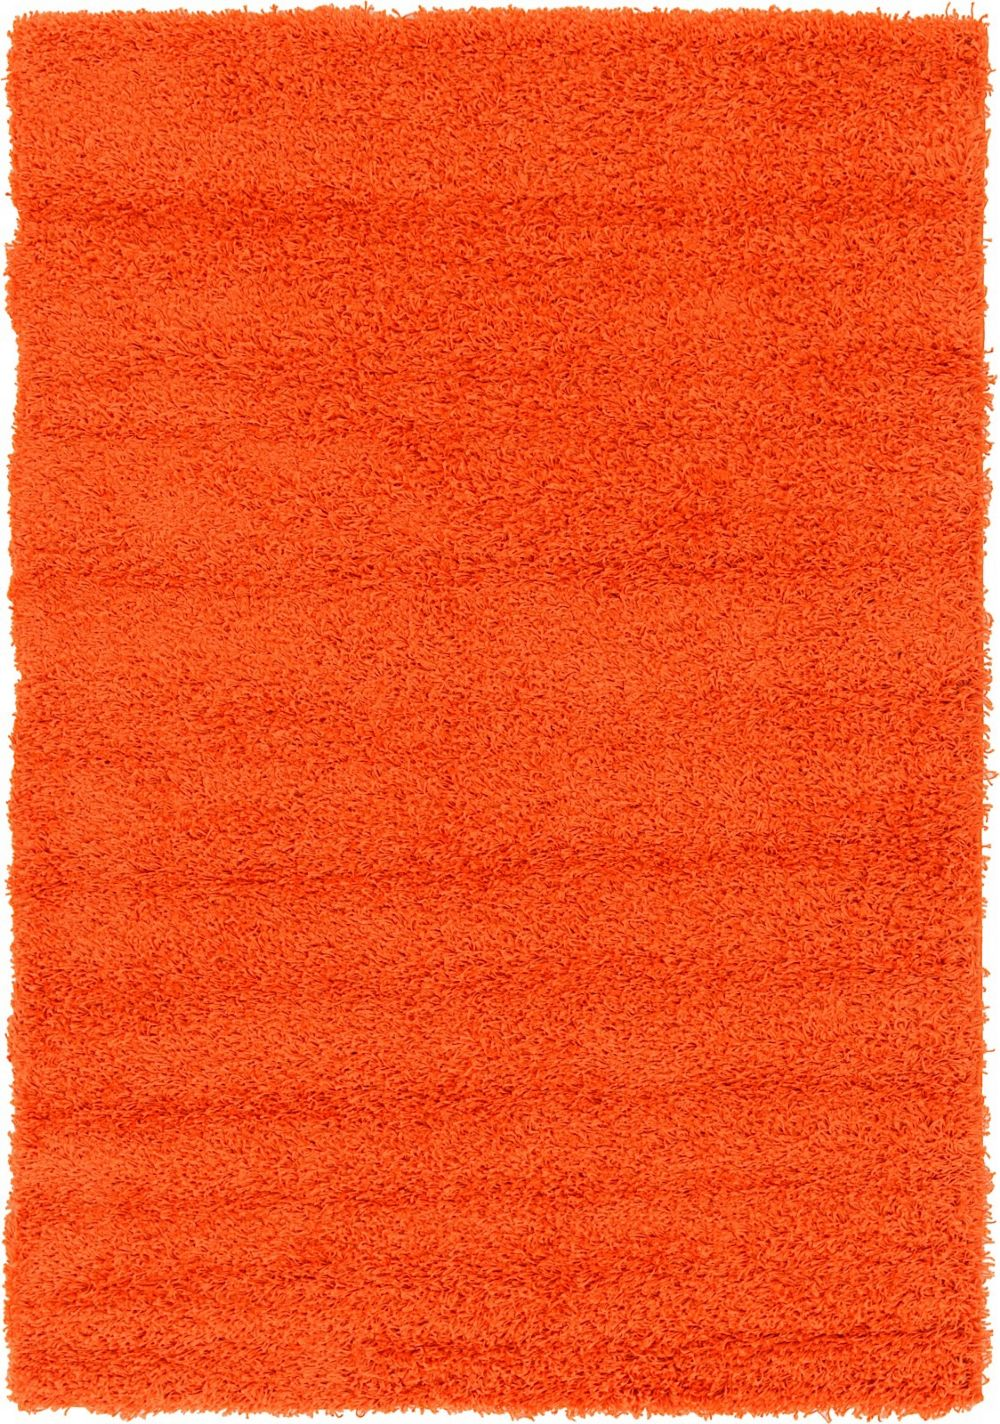 rugpal sybil solid/striped area rug collection